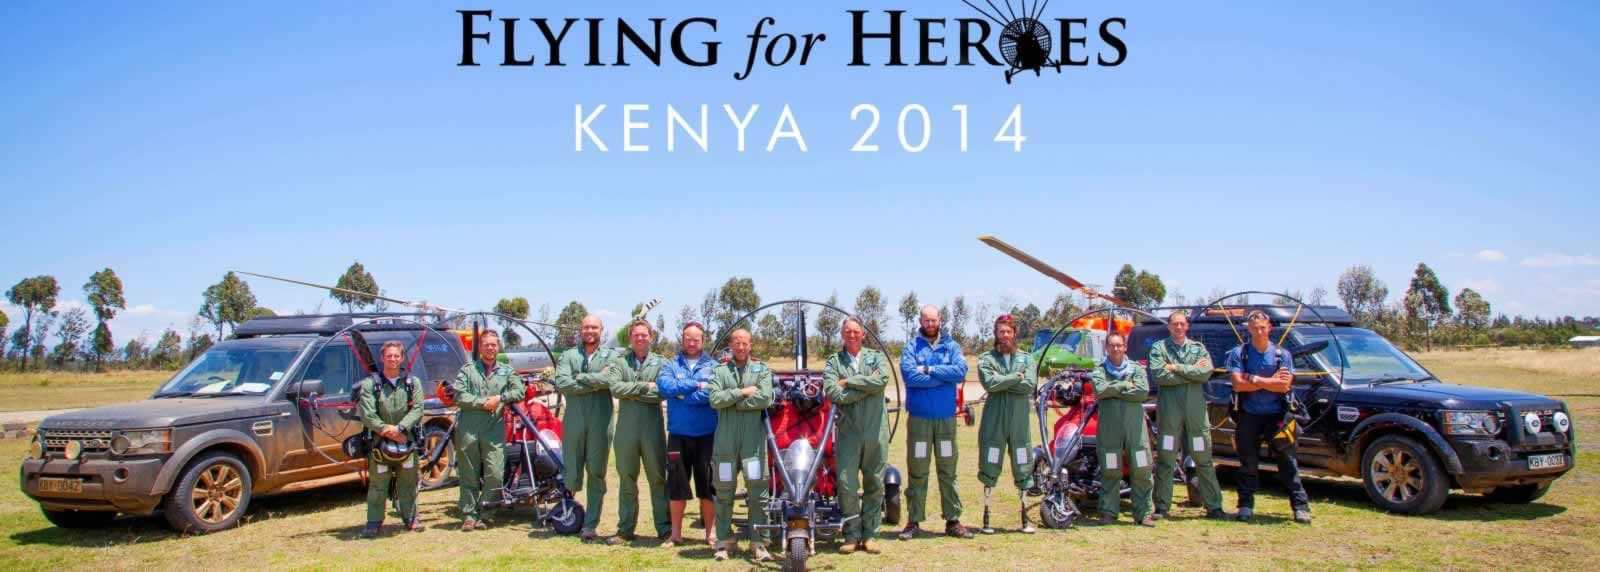 Flying for Heroes